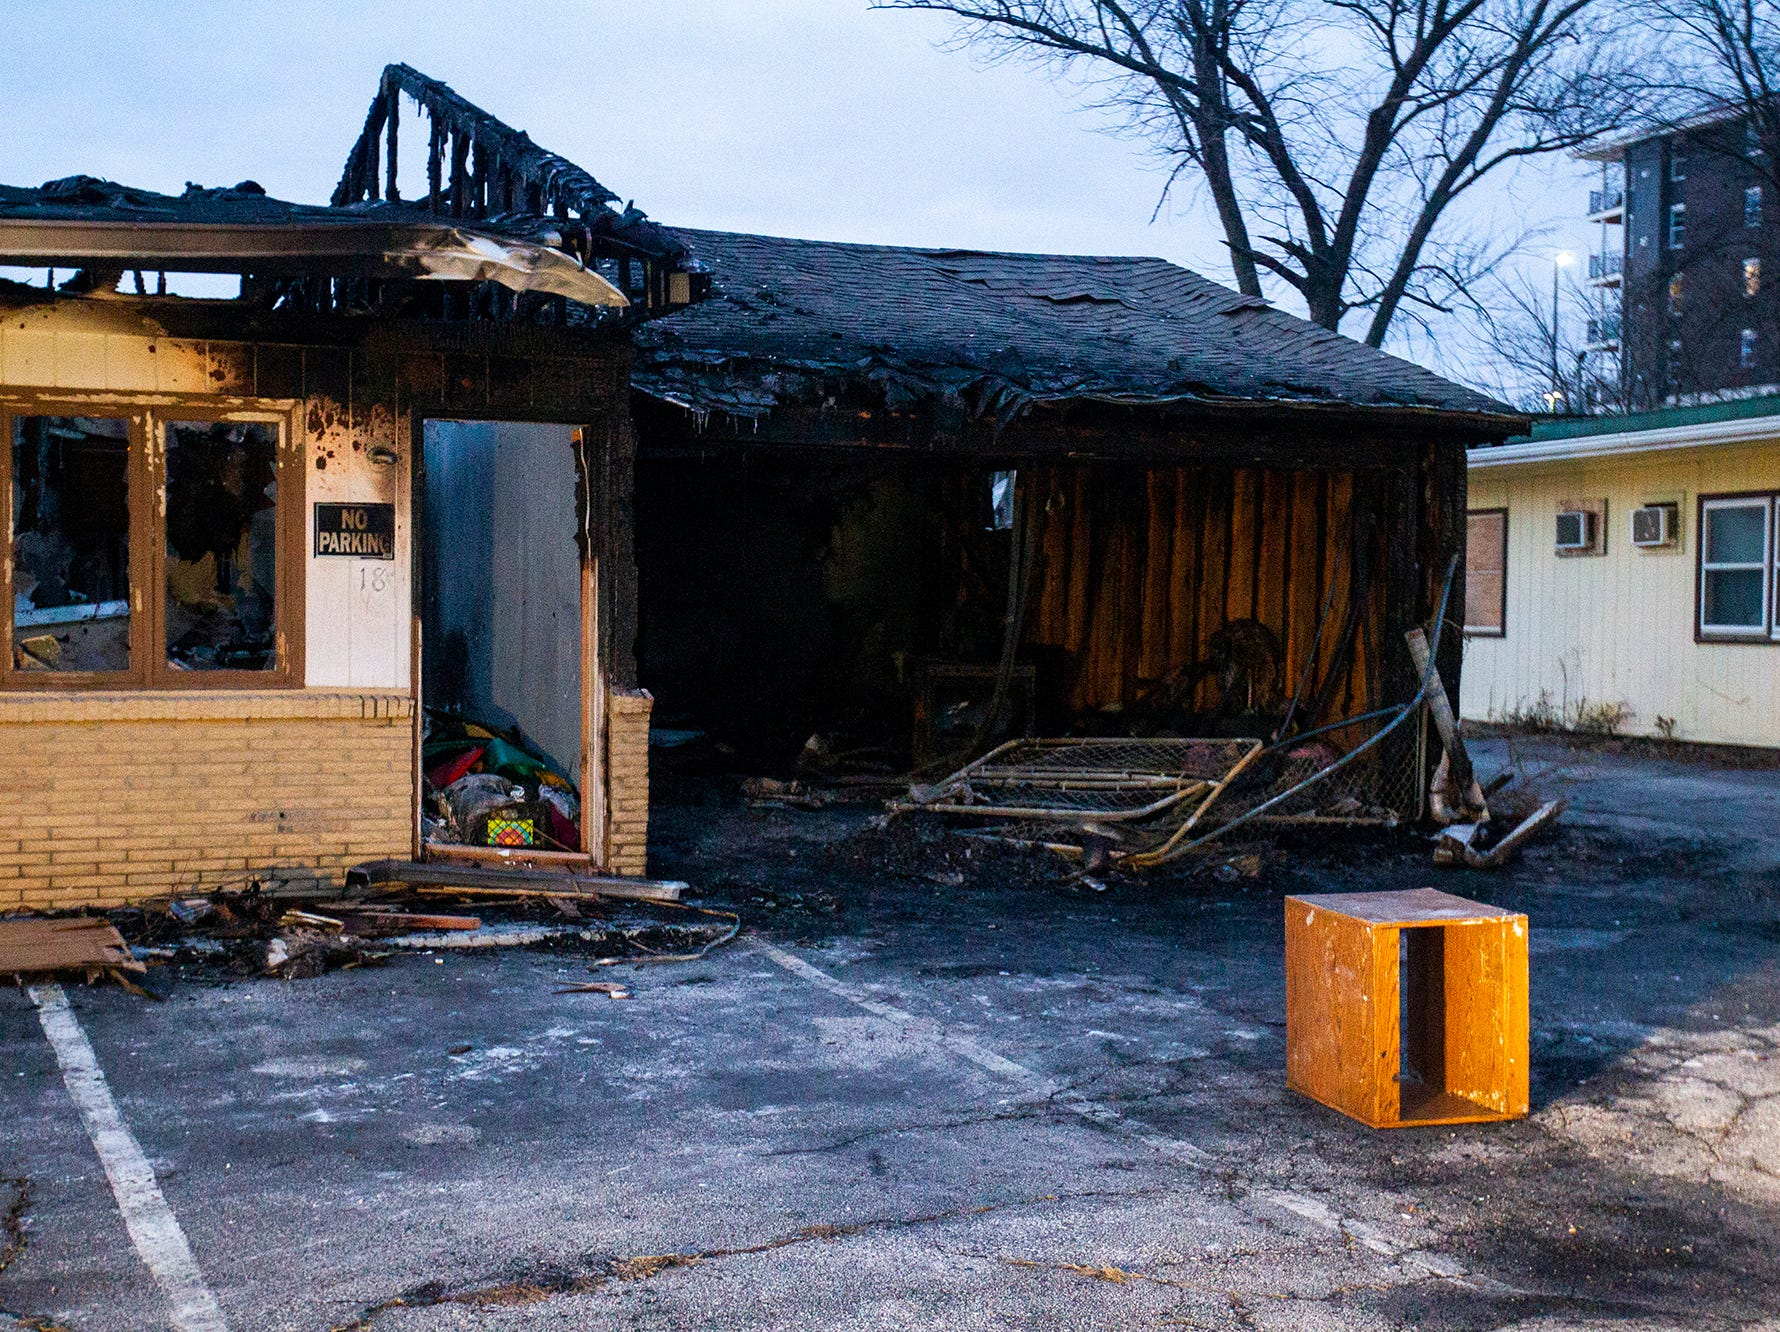 A fire damaged unit is seen on Monday, Nov. 12, 2018, at the former Capri Lodge, 705 2nd St, Coralville. Firefighters were dispatched to the already closed motel complex early Monday morning to extinguish a fire in unit No. 18.